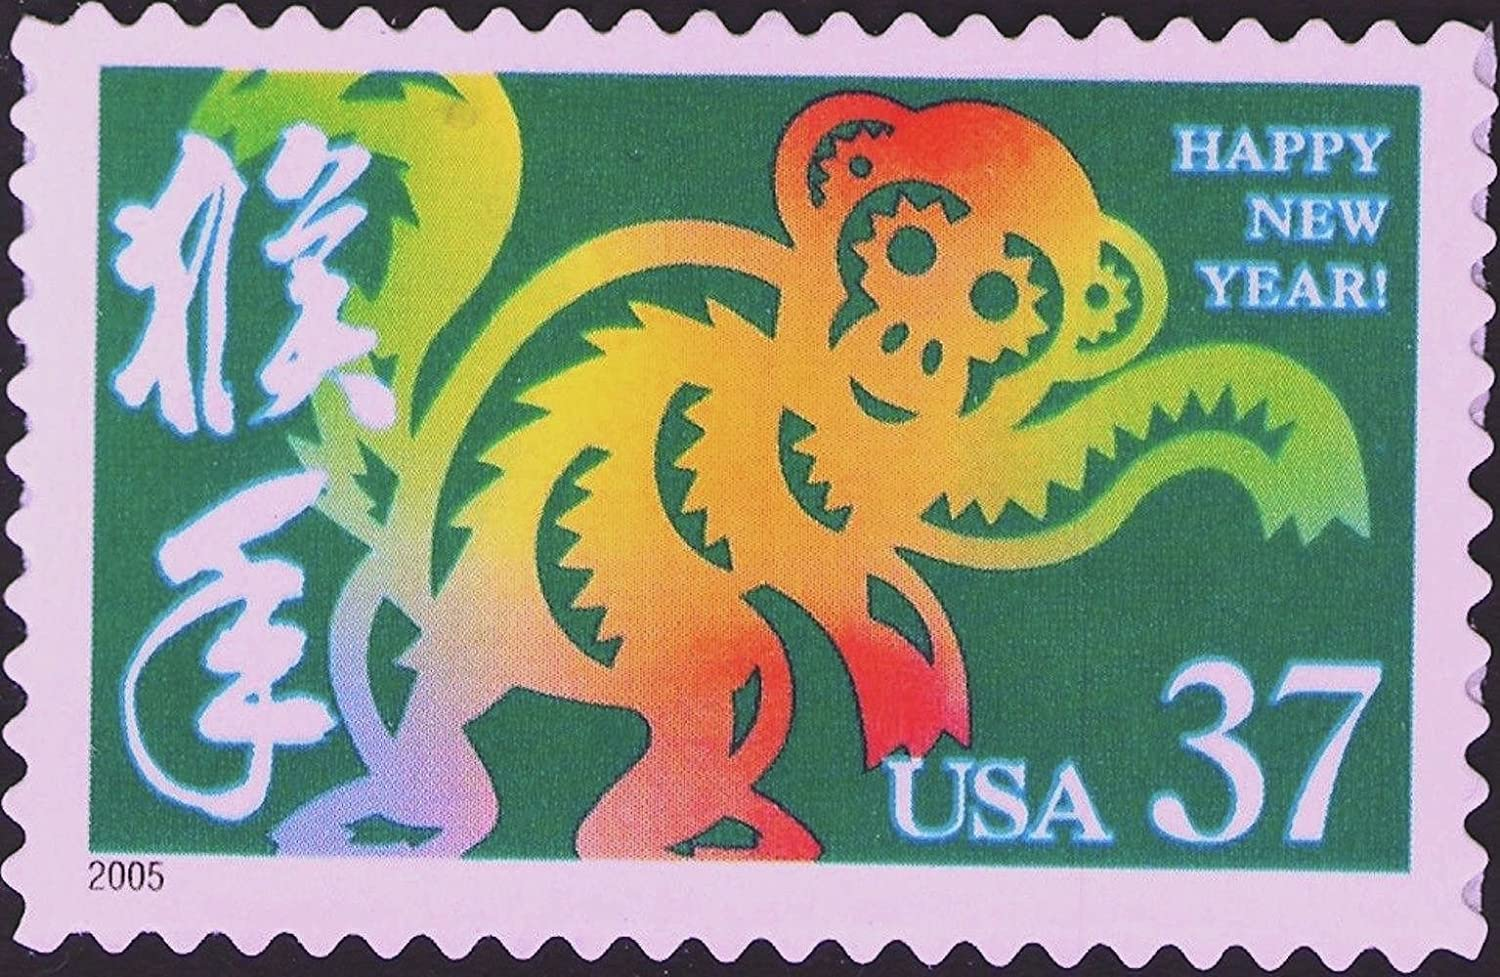 Full Sheet of 20 x 37-Cent Postage Stamps USA 2004 Year of the Monkey: Lunar New Year Scott 3832